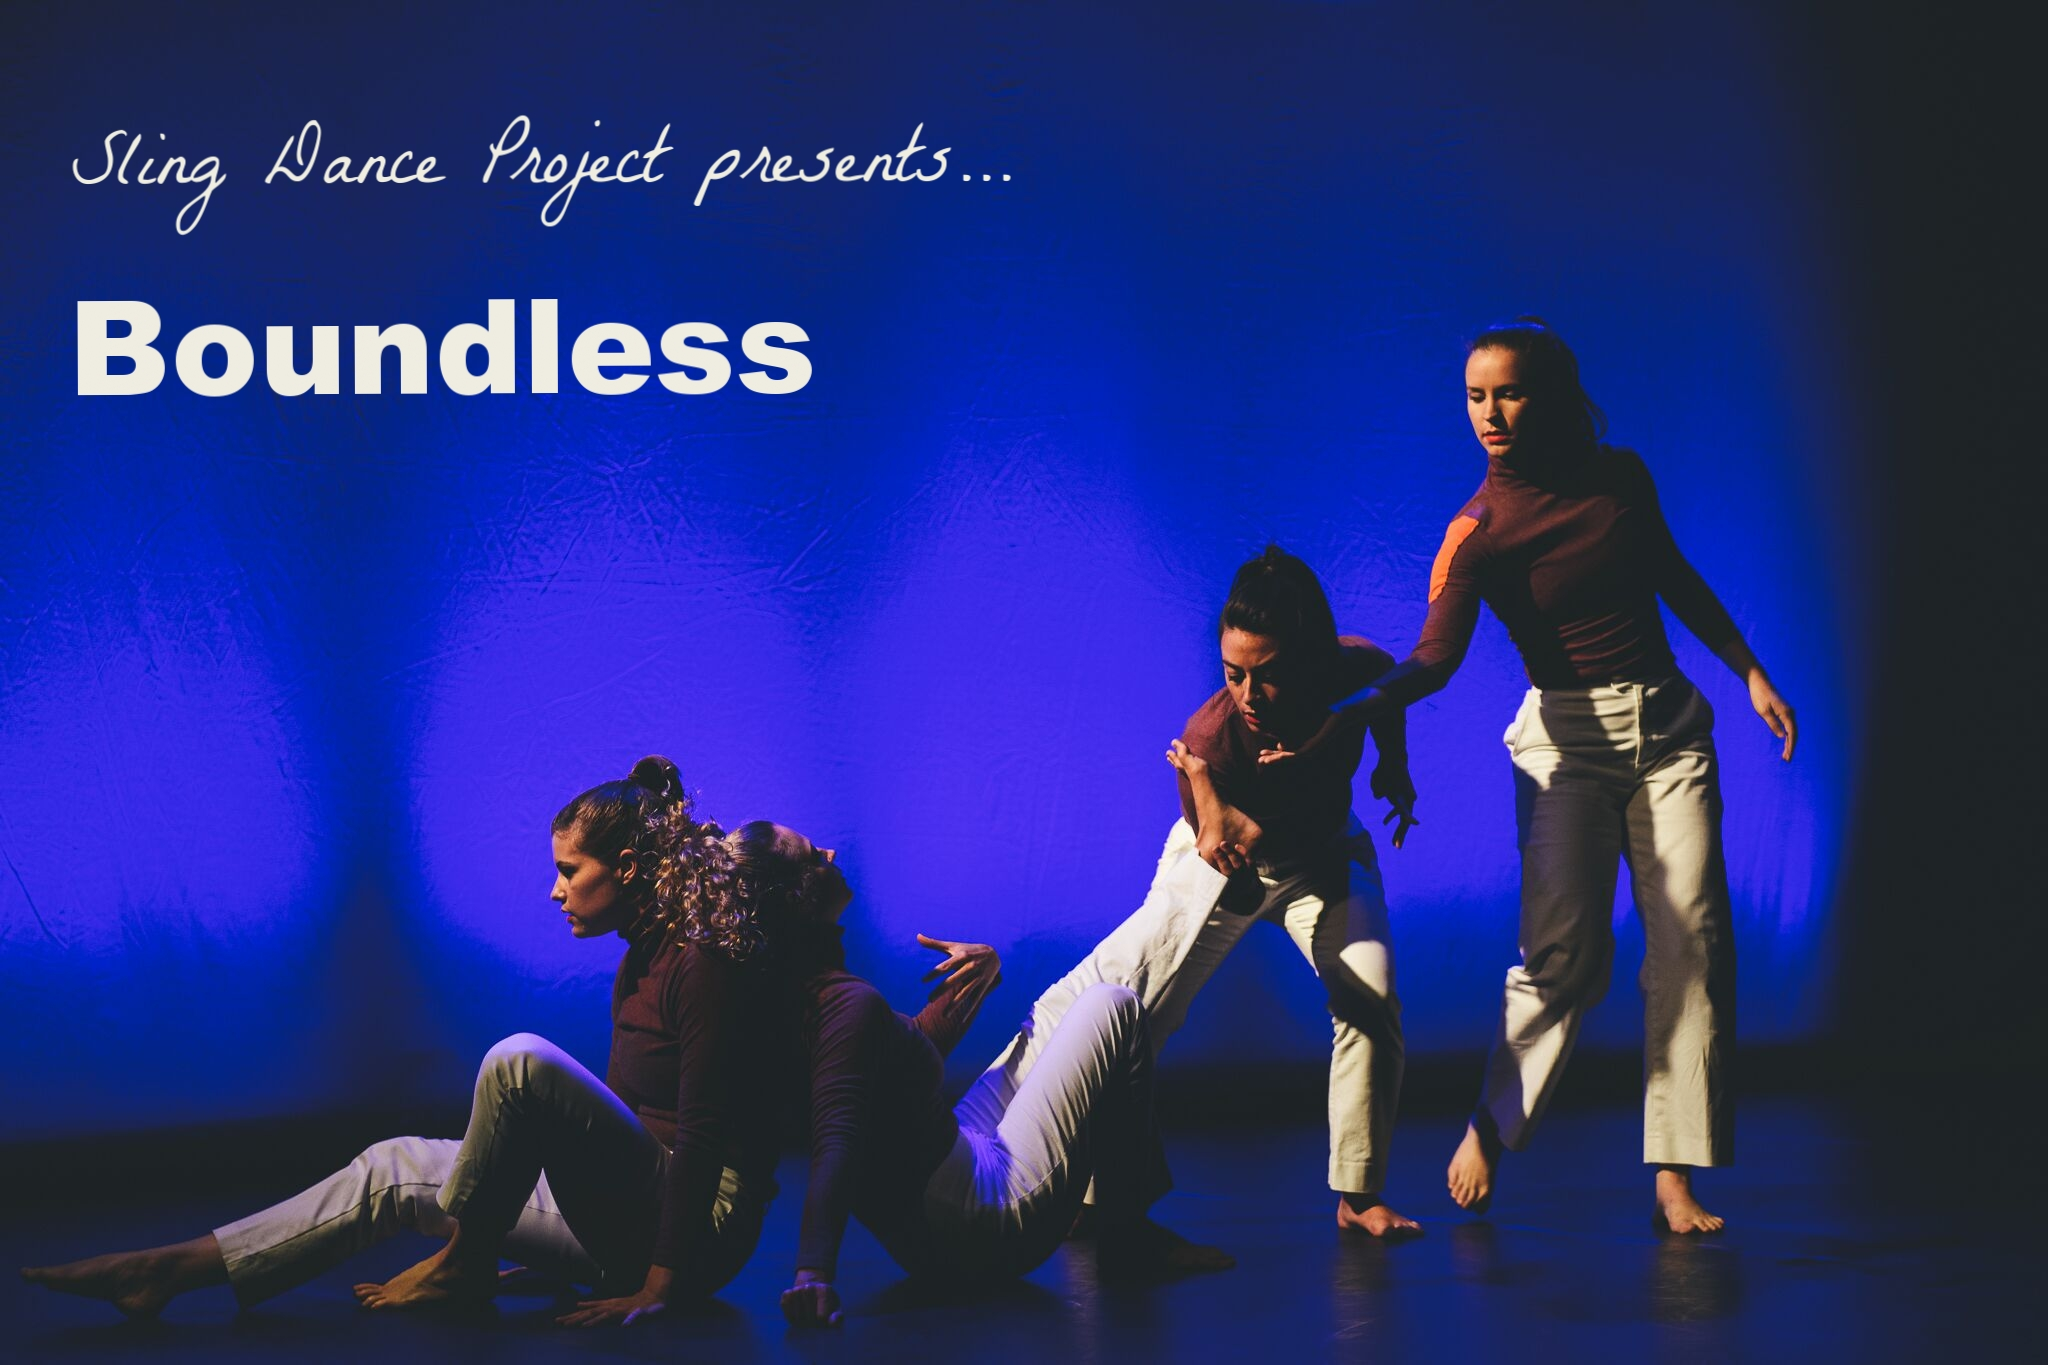 """Foreign Phone Number - Sling Dance Project presents """"Boundless""""July 15-16, 2016The Off Center. Austin, TX"""